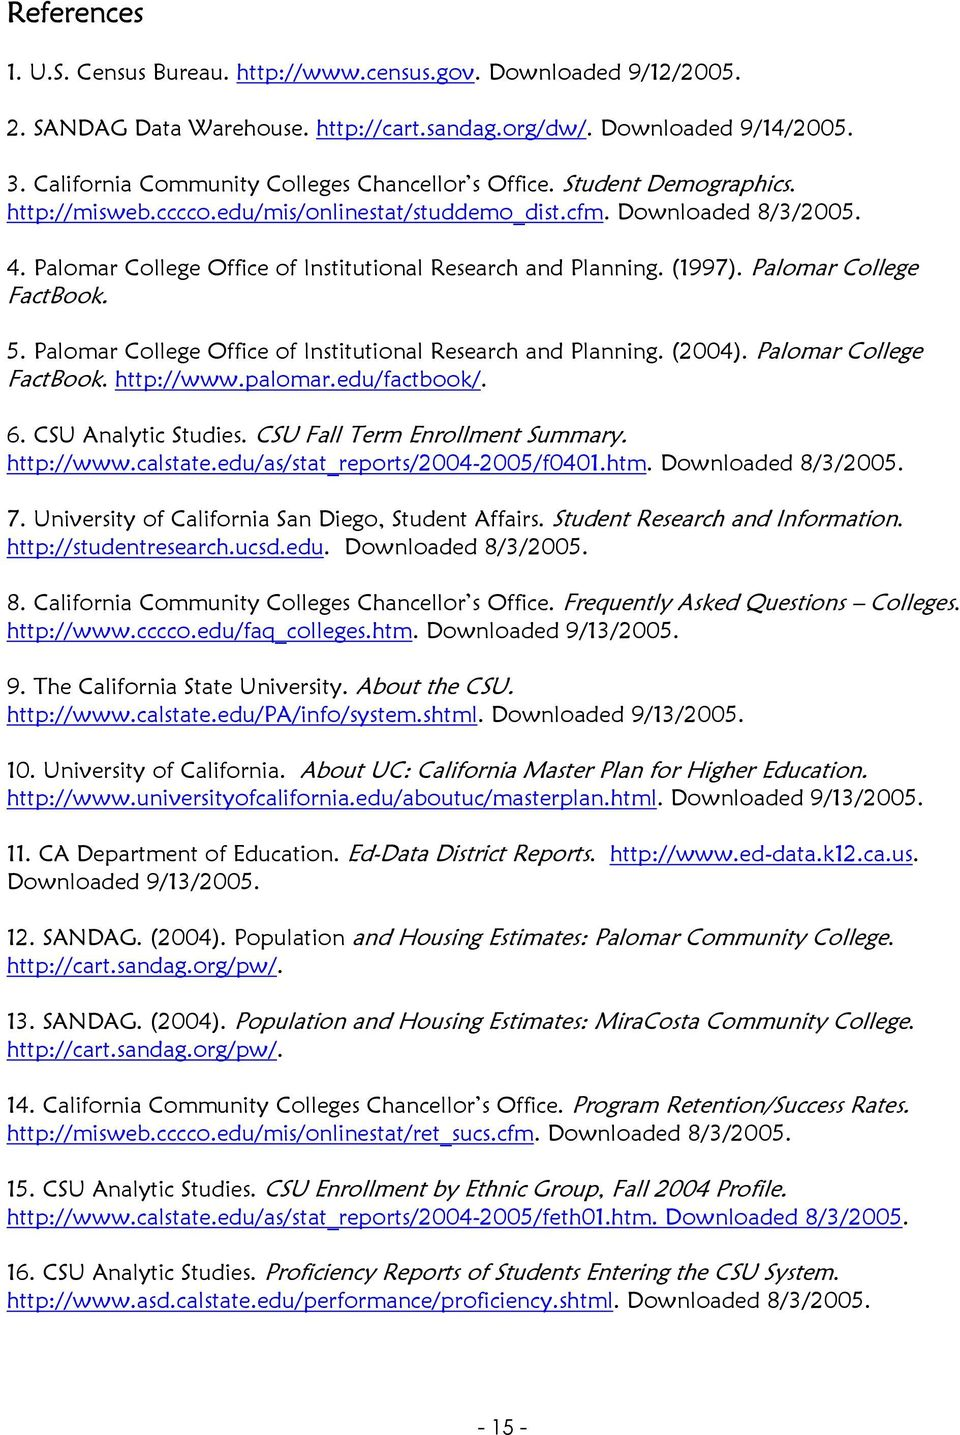 Palomar College Office of Institutional Research and Planning. (1997). Palomar College FactBook. 5. Palomar College Office of Institutional Research and Planning. (2004). Palomar College FactBook. http://www.